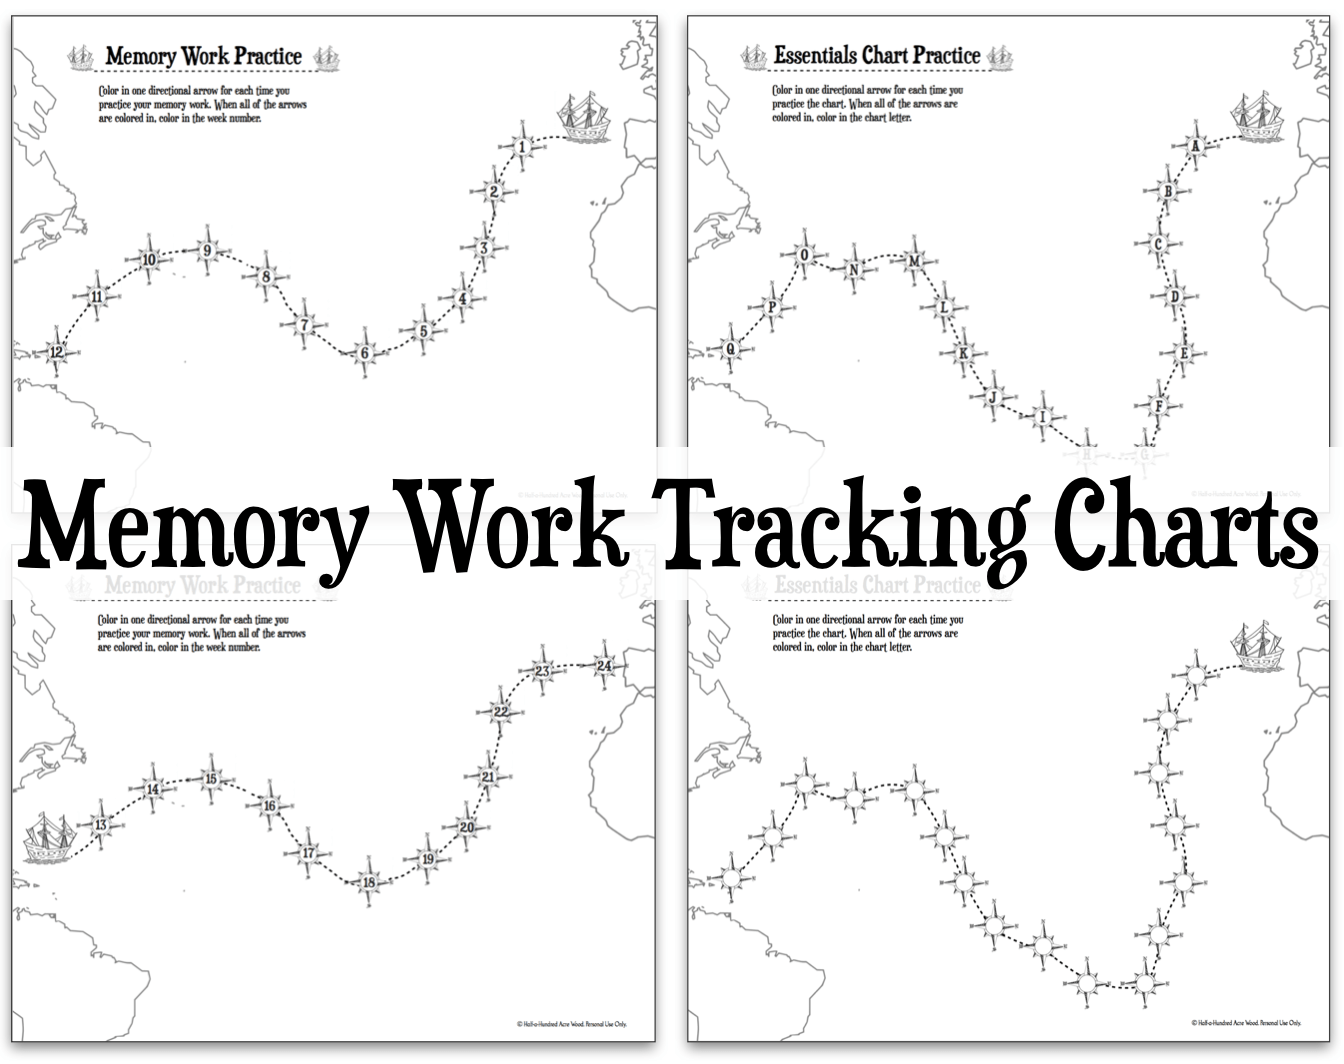 Memory Work Tracking Charts Foundations Amp Essentials